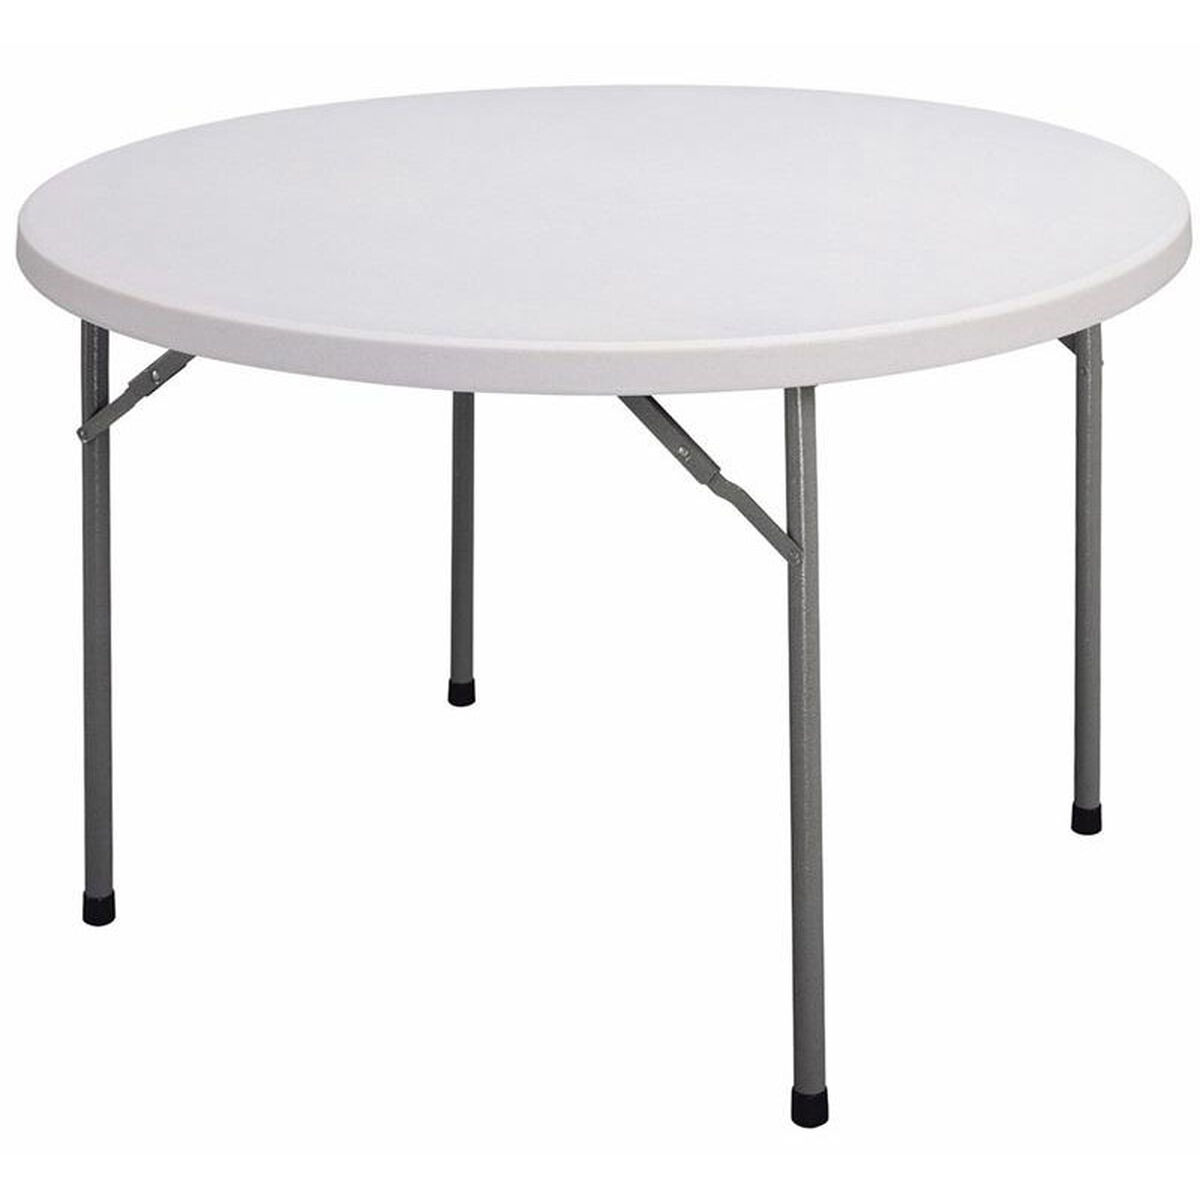 Correll blow molded plastic top round food service table - Table cuisine retractable ...